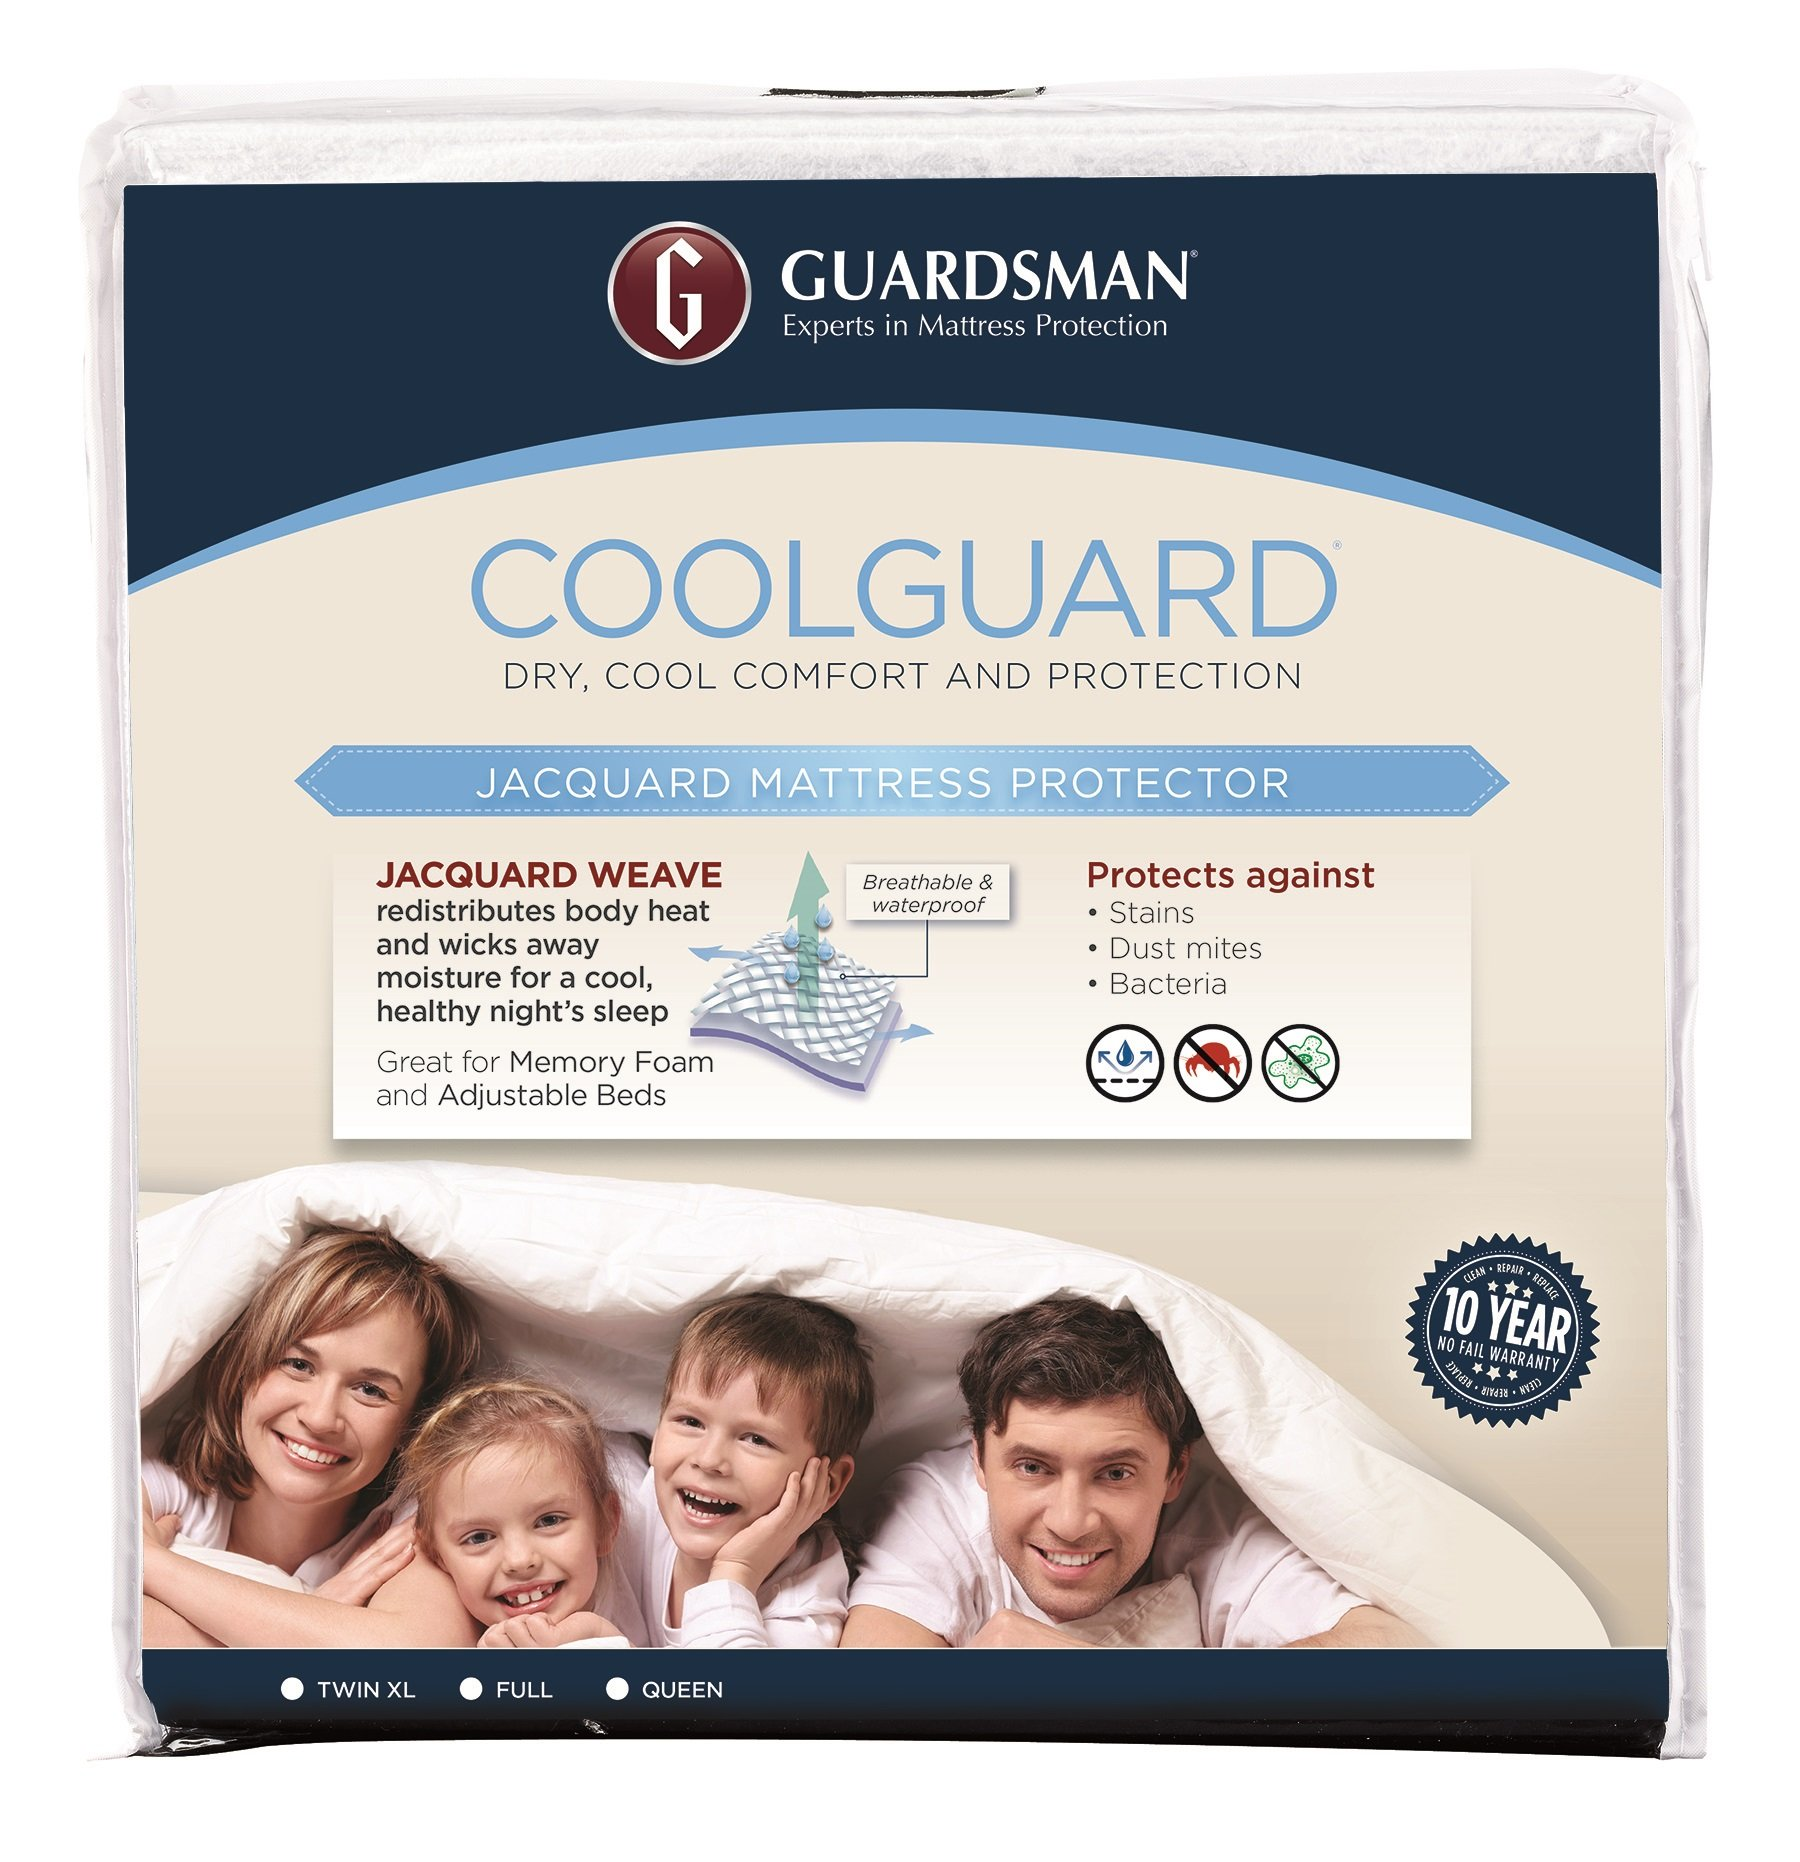 Guardsman Cool Guard Waterproof Mattress Protector - King - Keep Cool, Protect Against Stains, Spills, Mishaps - 10 Year Warranty - Reusable(Packaging May Vary)